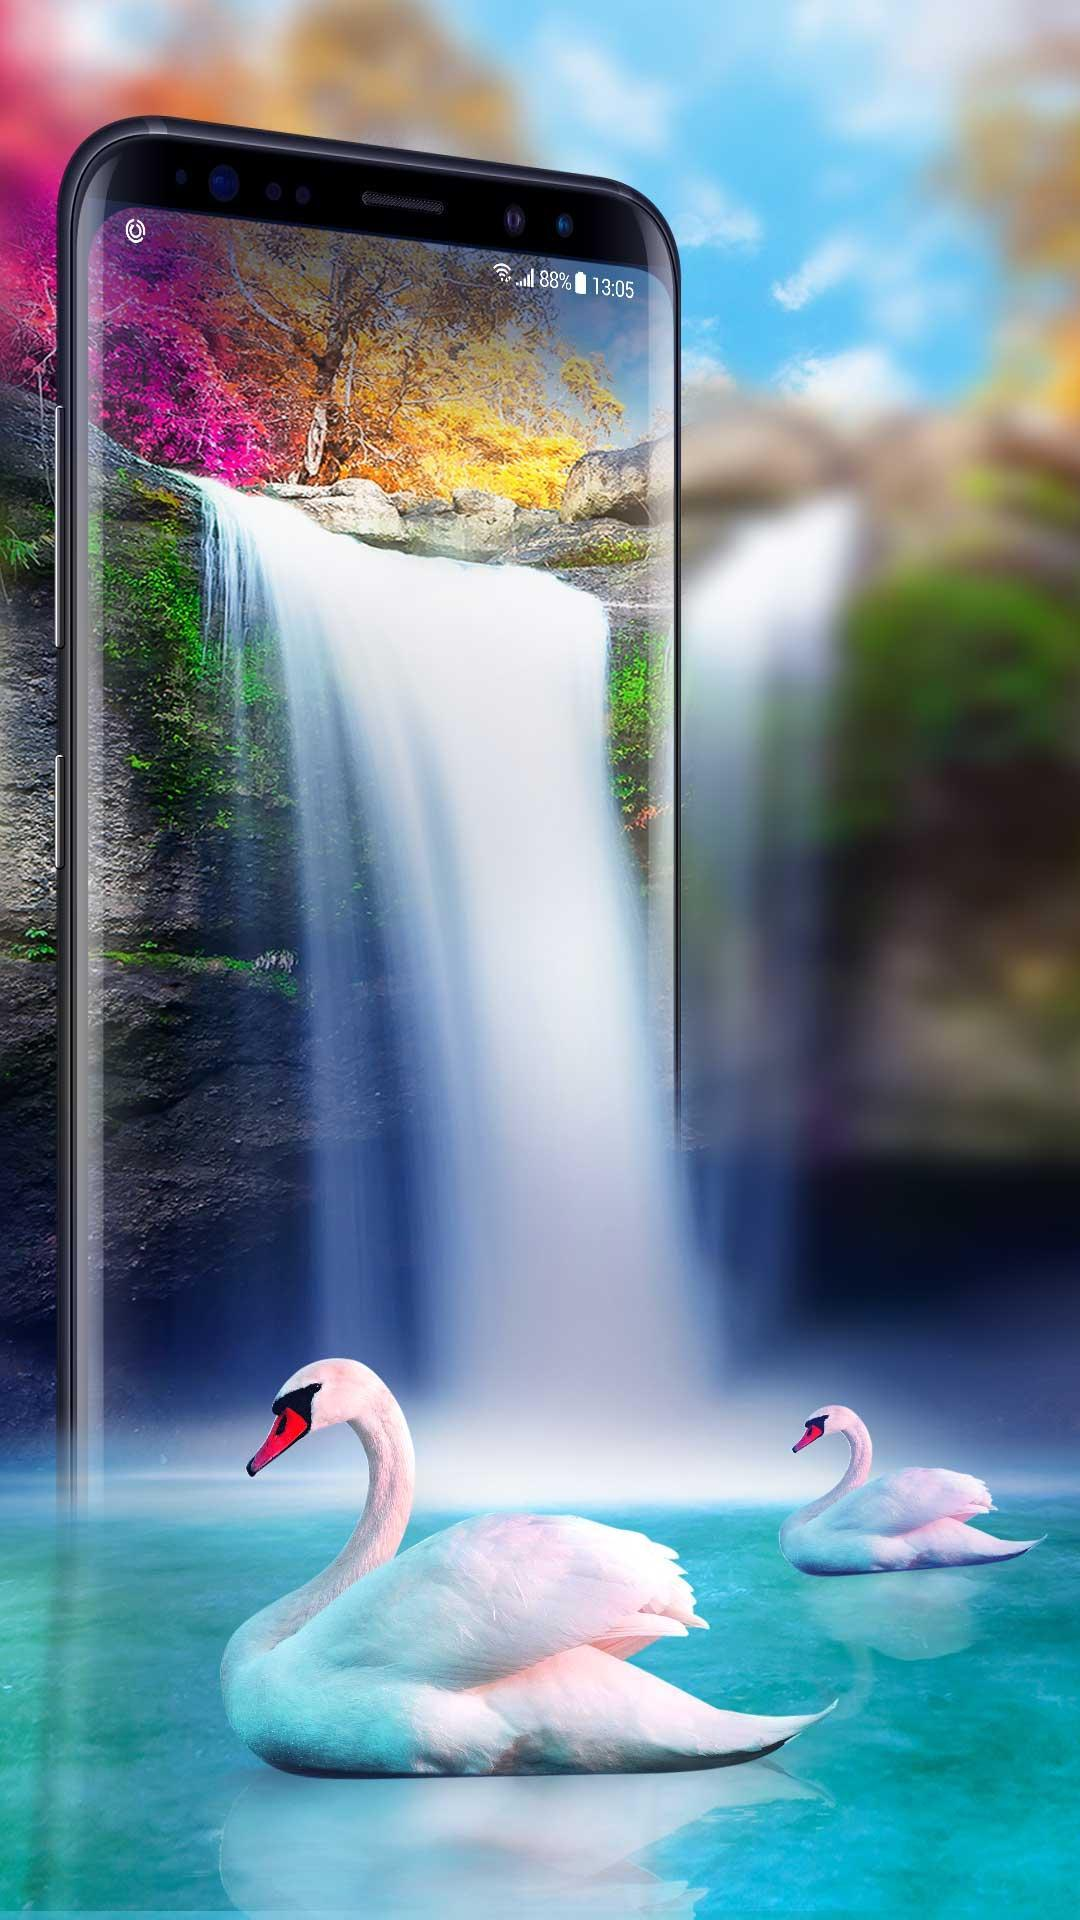 Live Wallpaper Waterfall& Swan for Android - APK Download